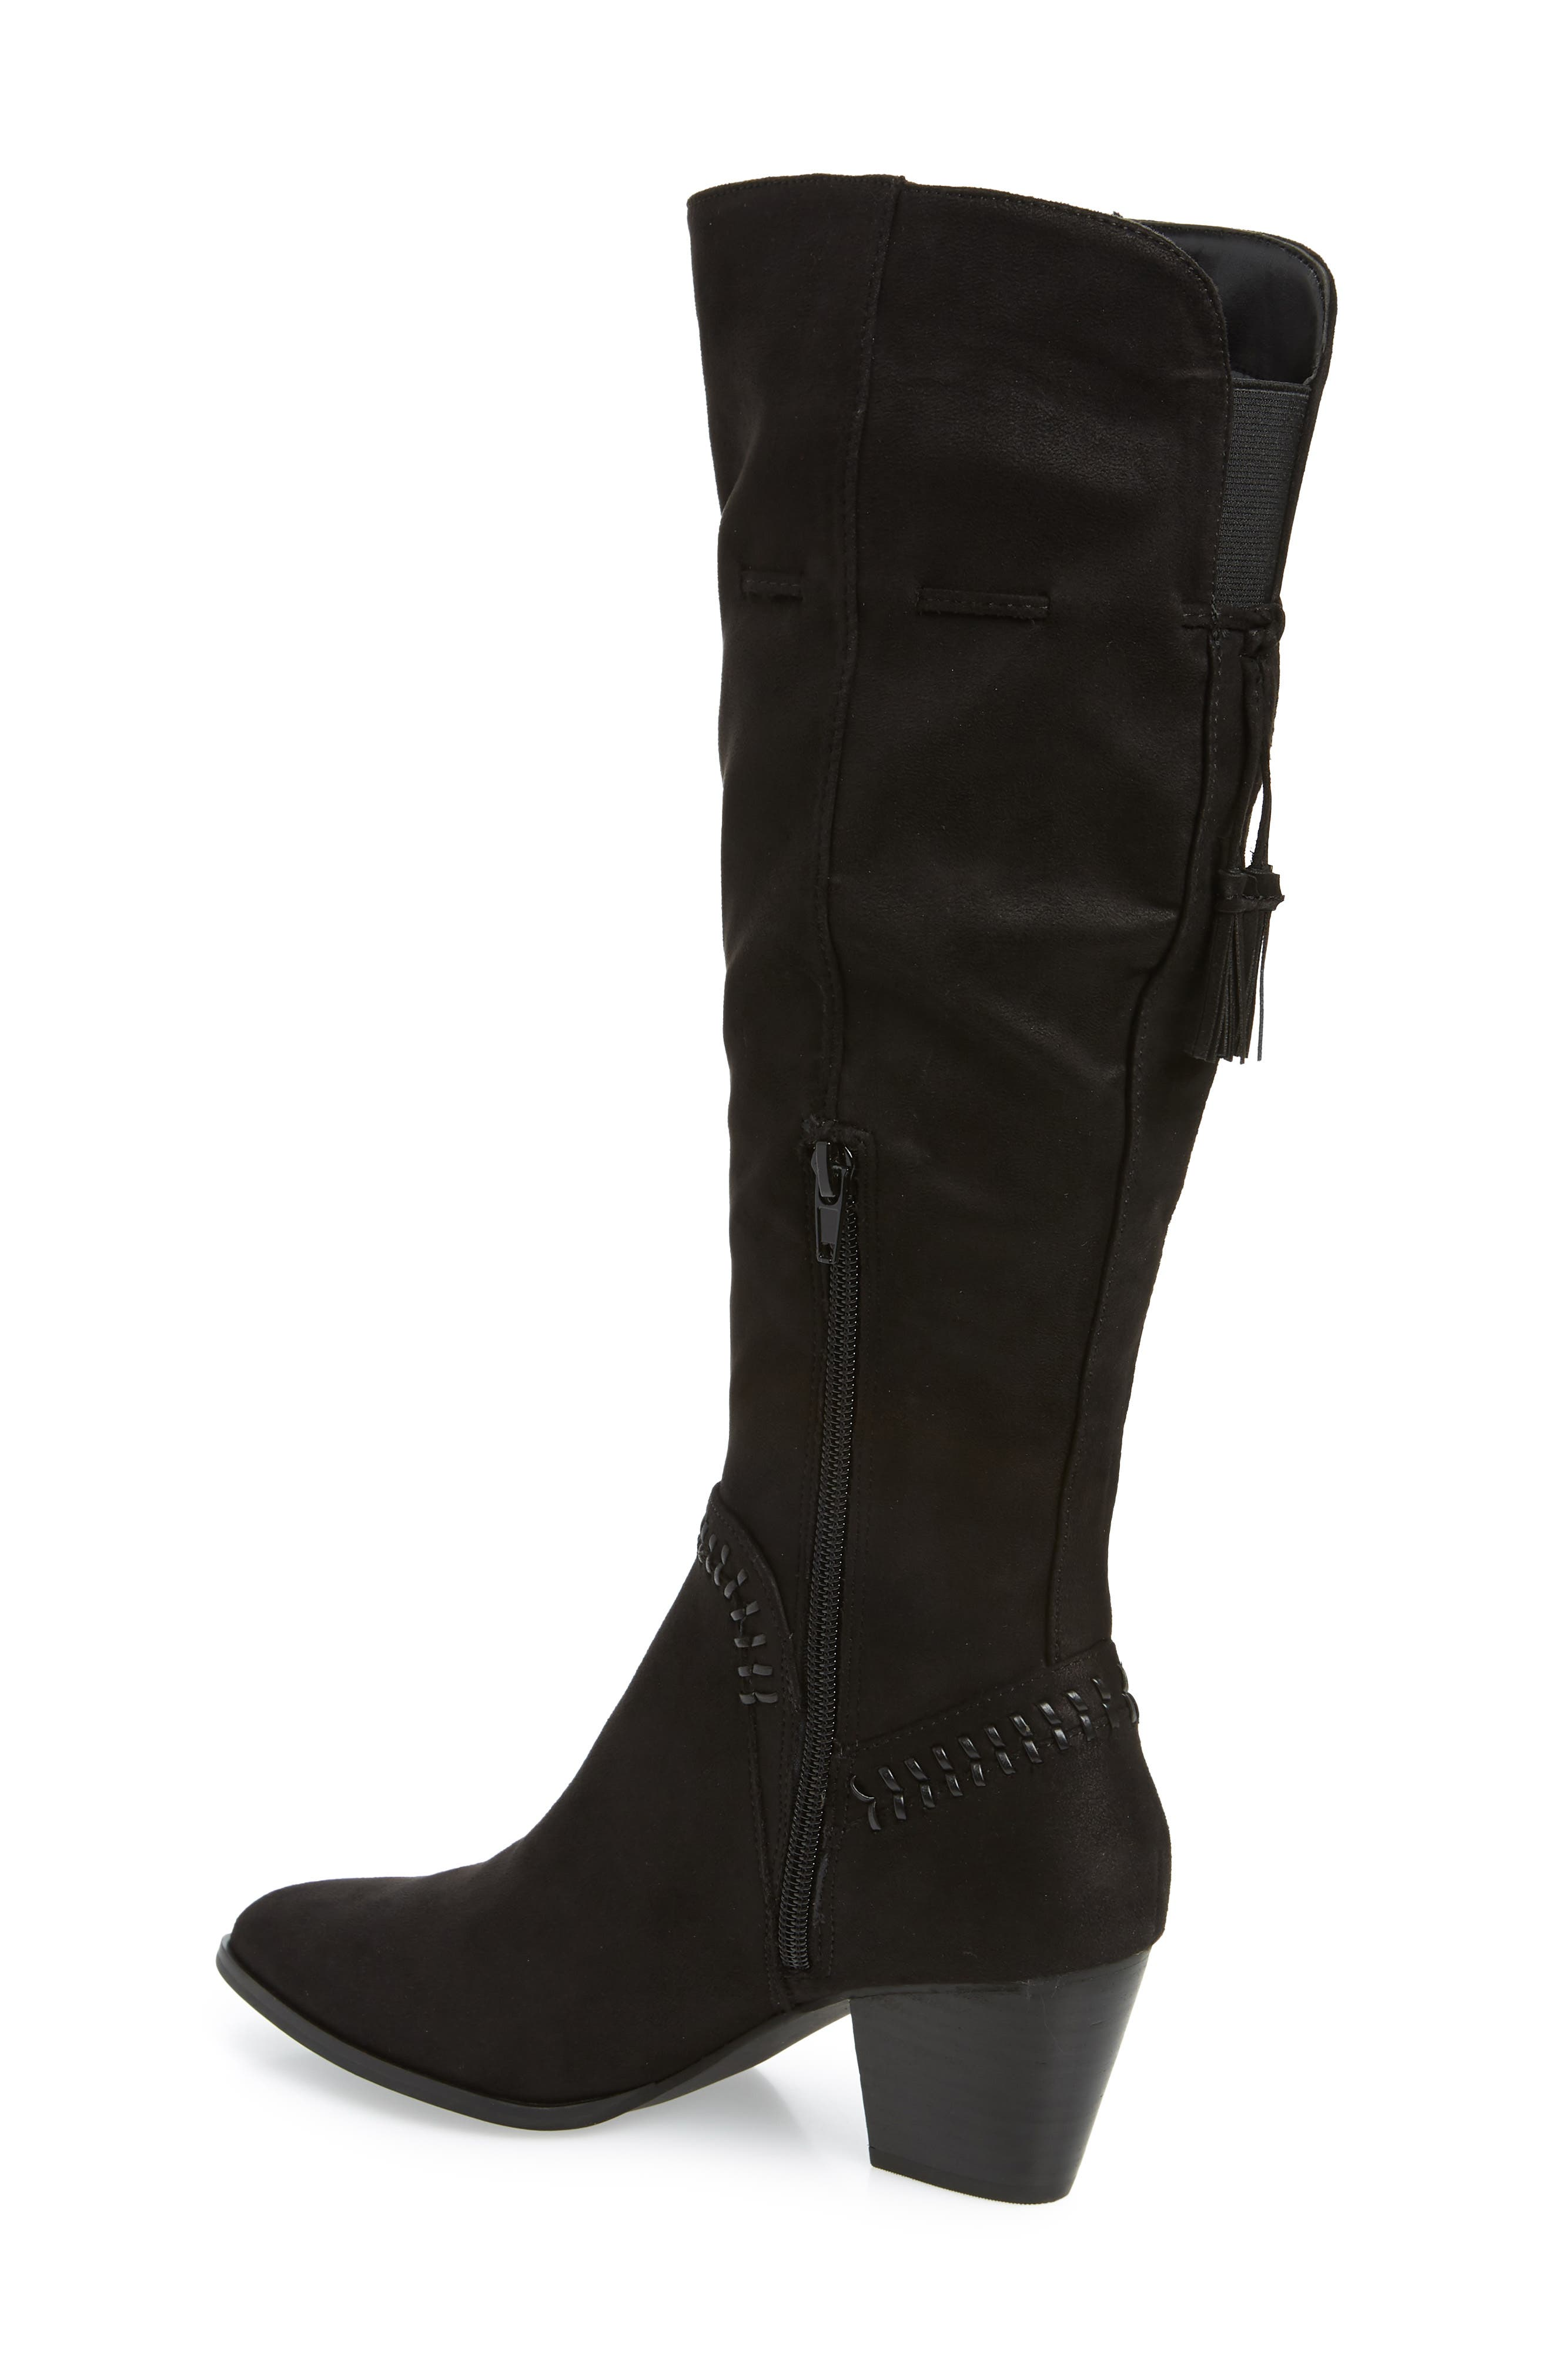 Eleanor II Knee High Boot,                             Alternate thumbnail 2, color,                             BLACK